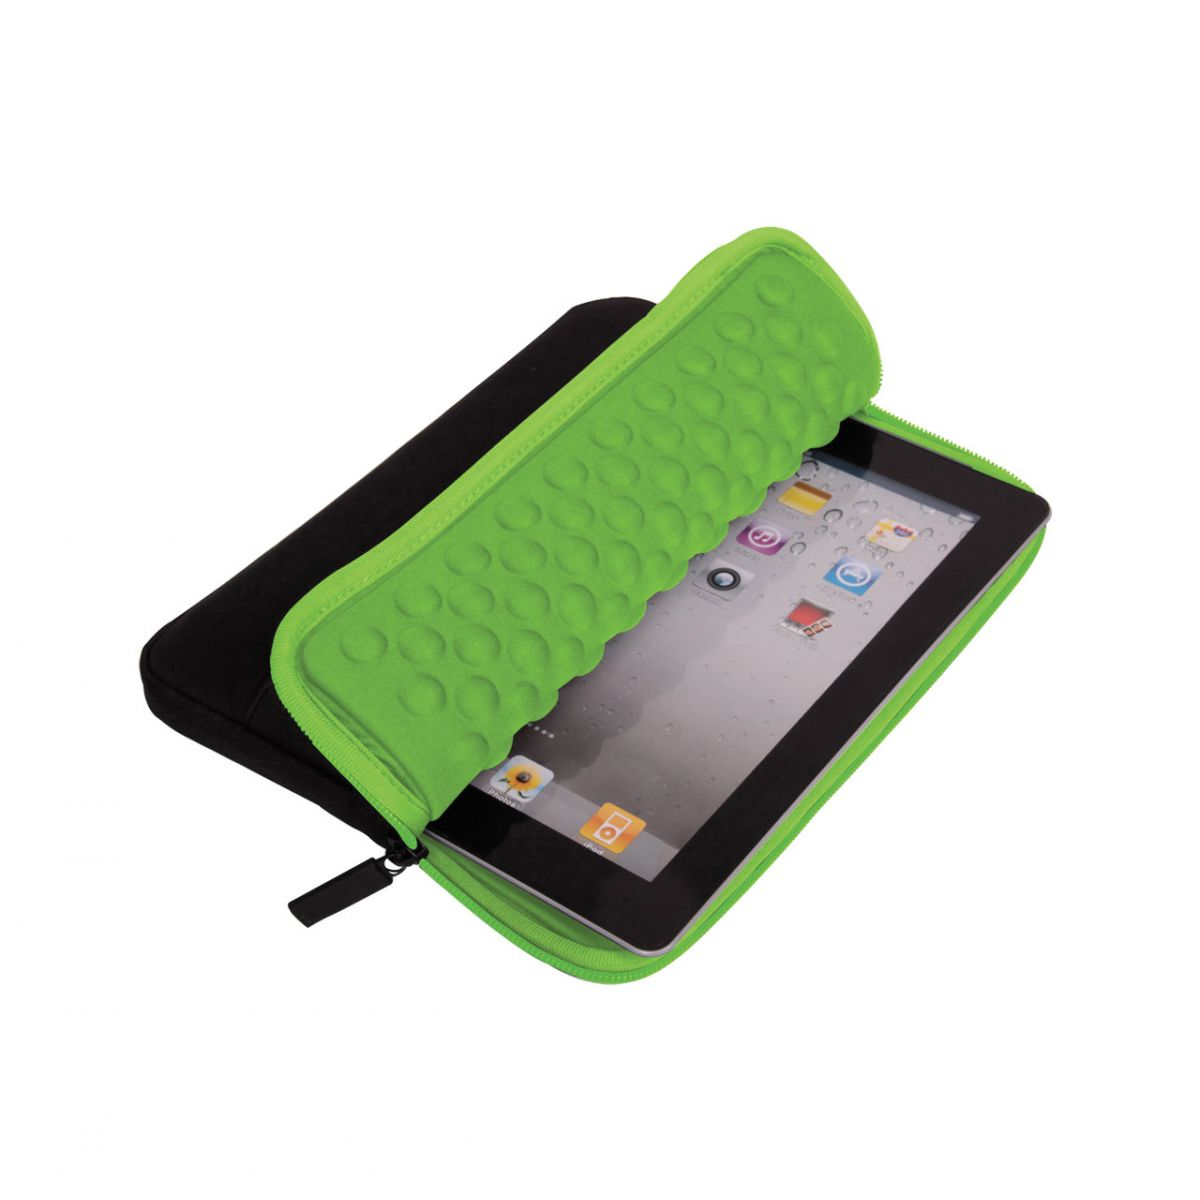 Case Bubbles Preto/Verde 7 Polegadas 0557 - Leadership